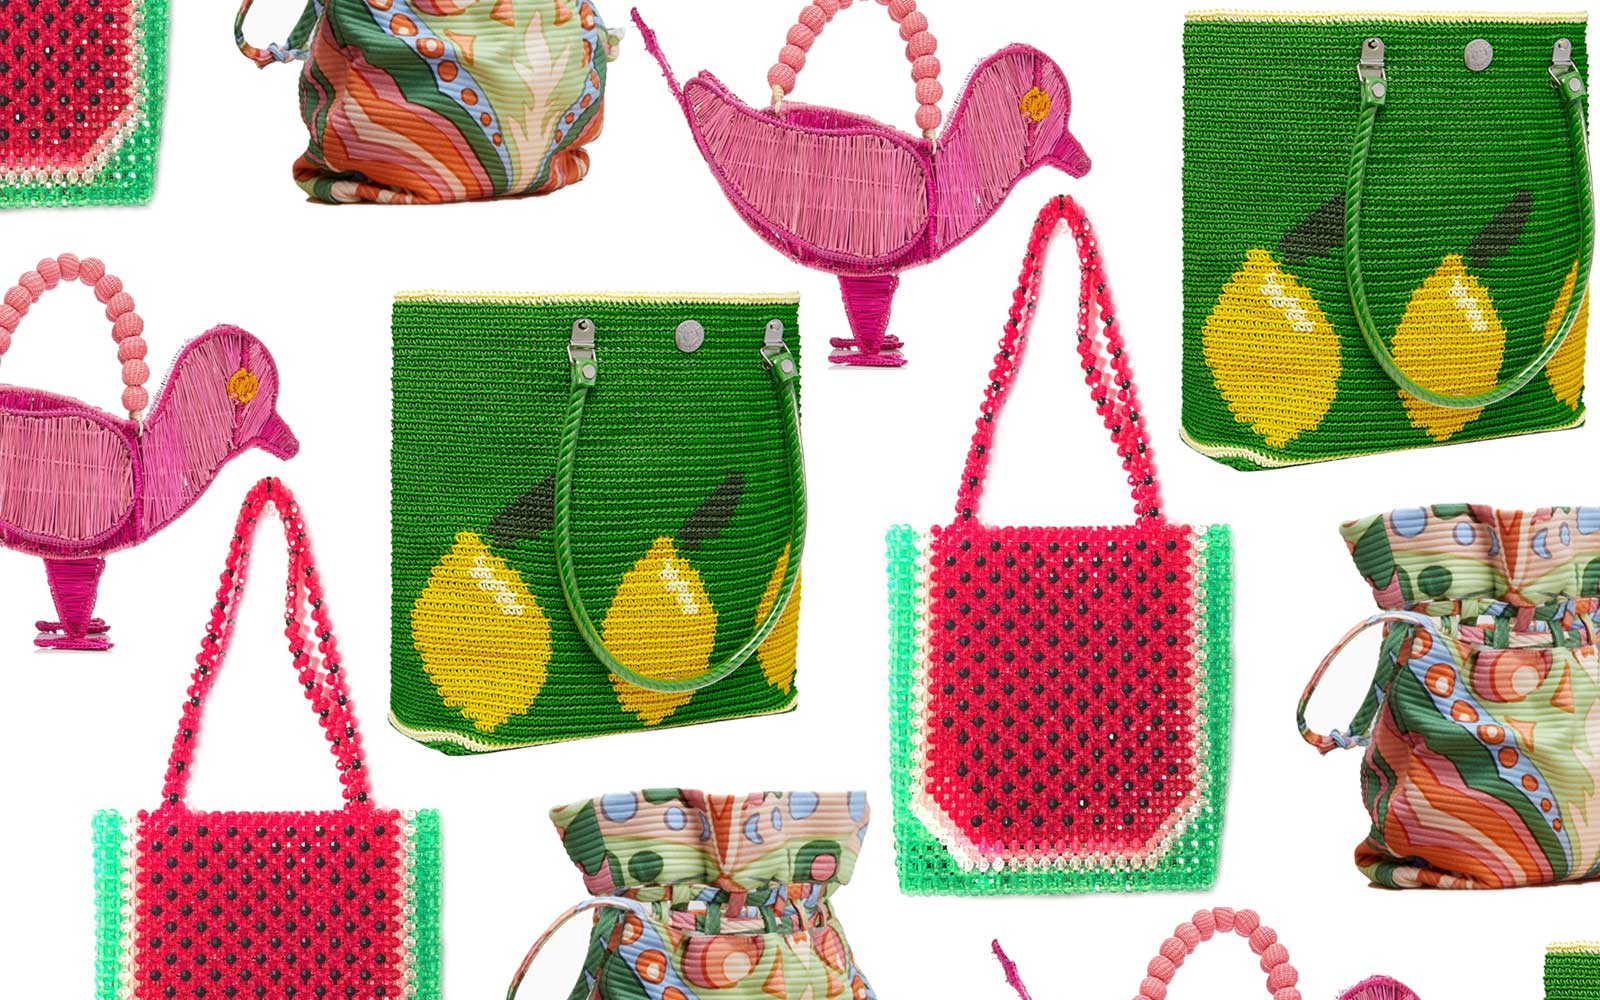 Quirky Beach Bags for Your Holiday Getaway